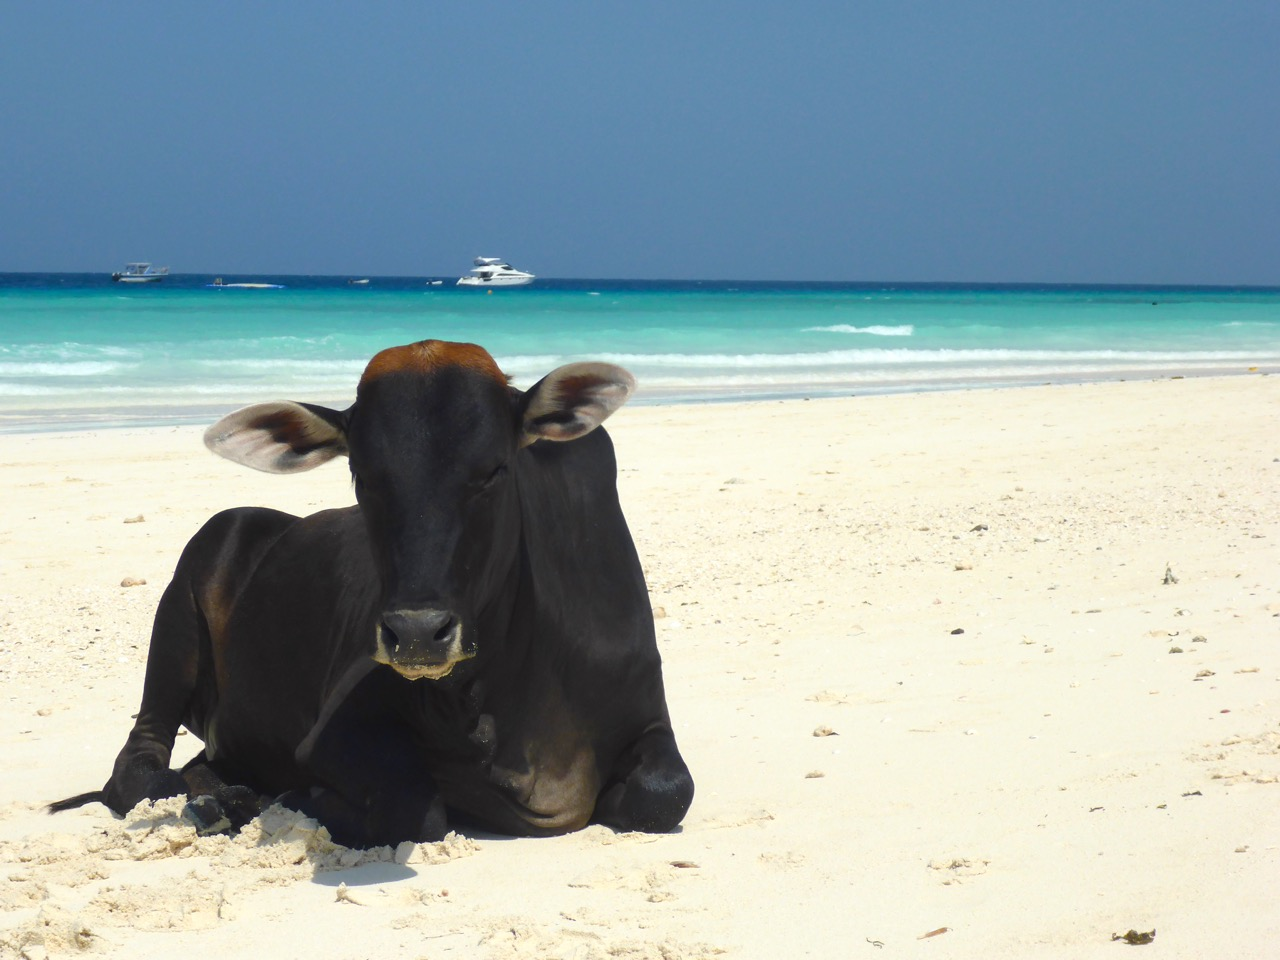 Cow on Nungwi Beach, Zanzibar